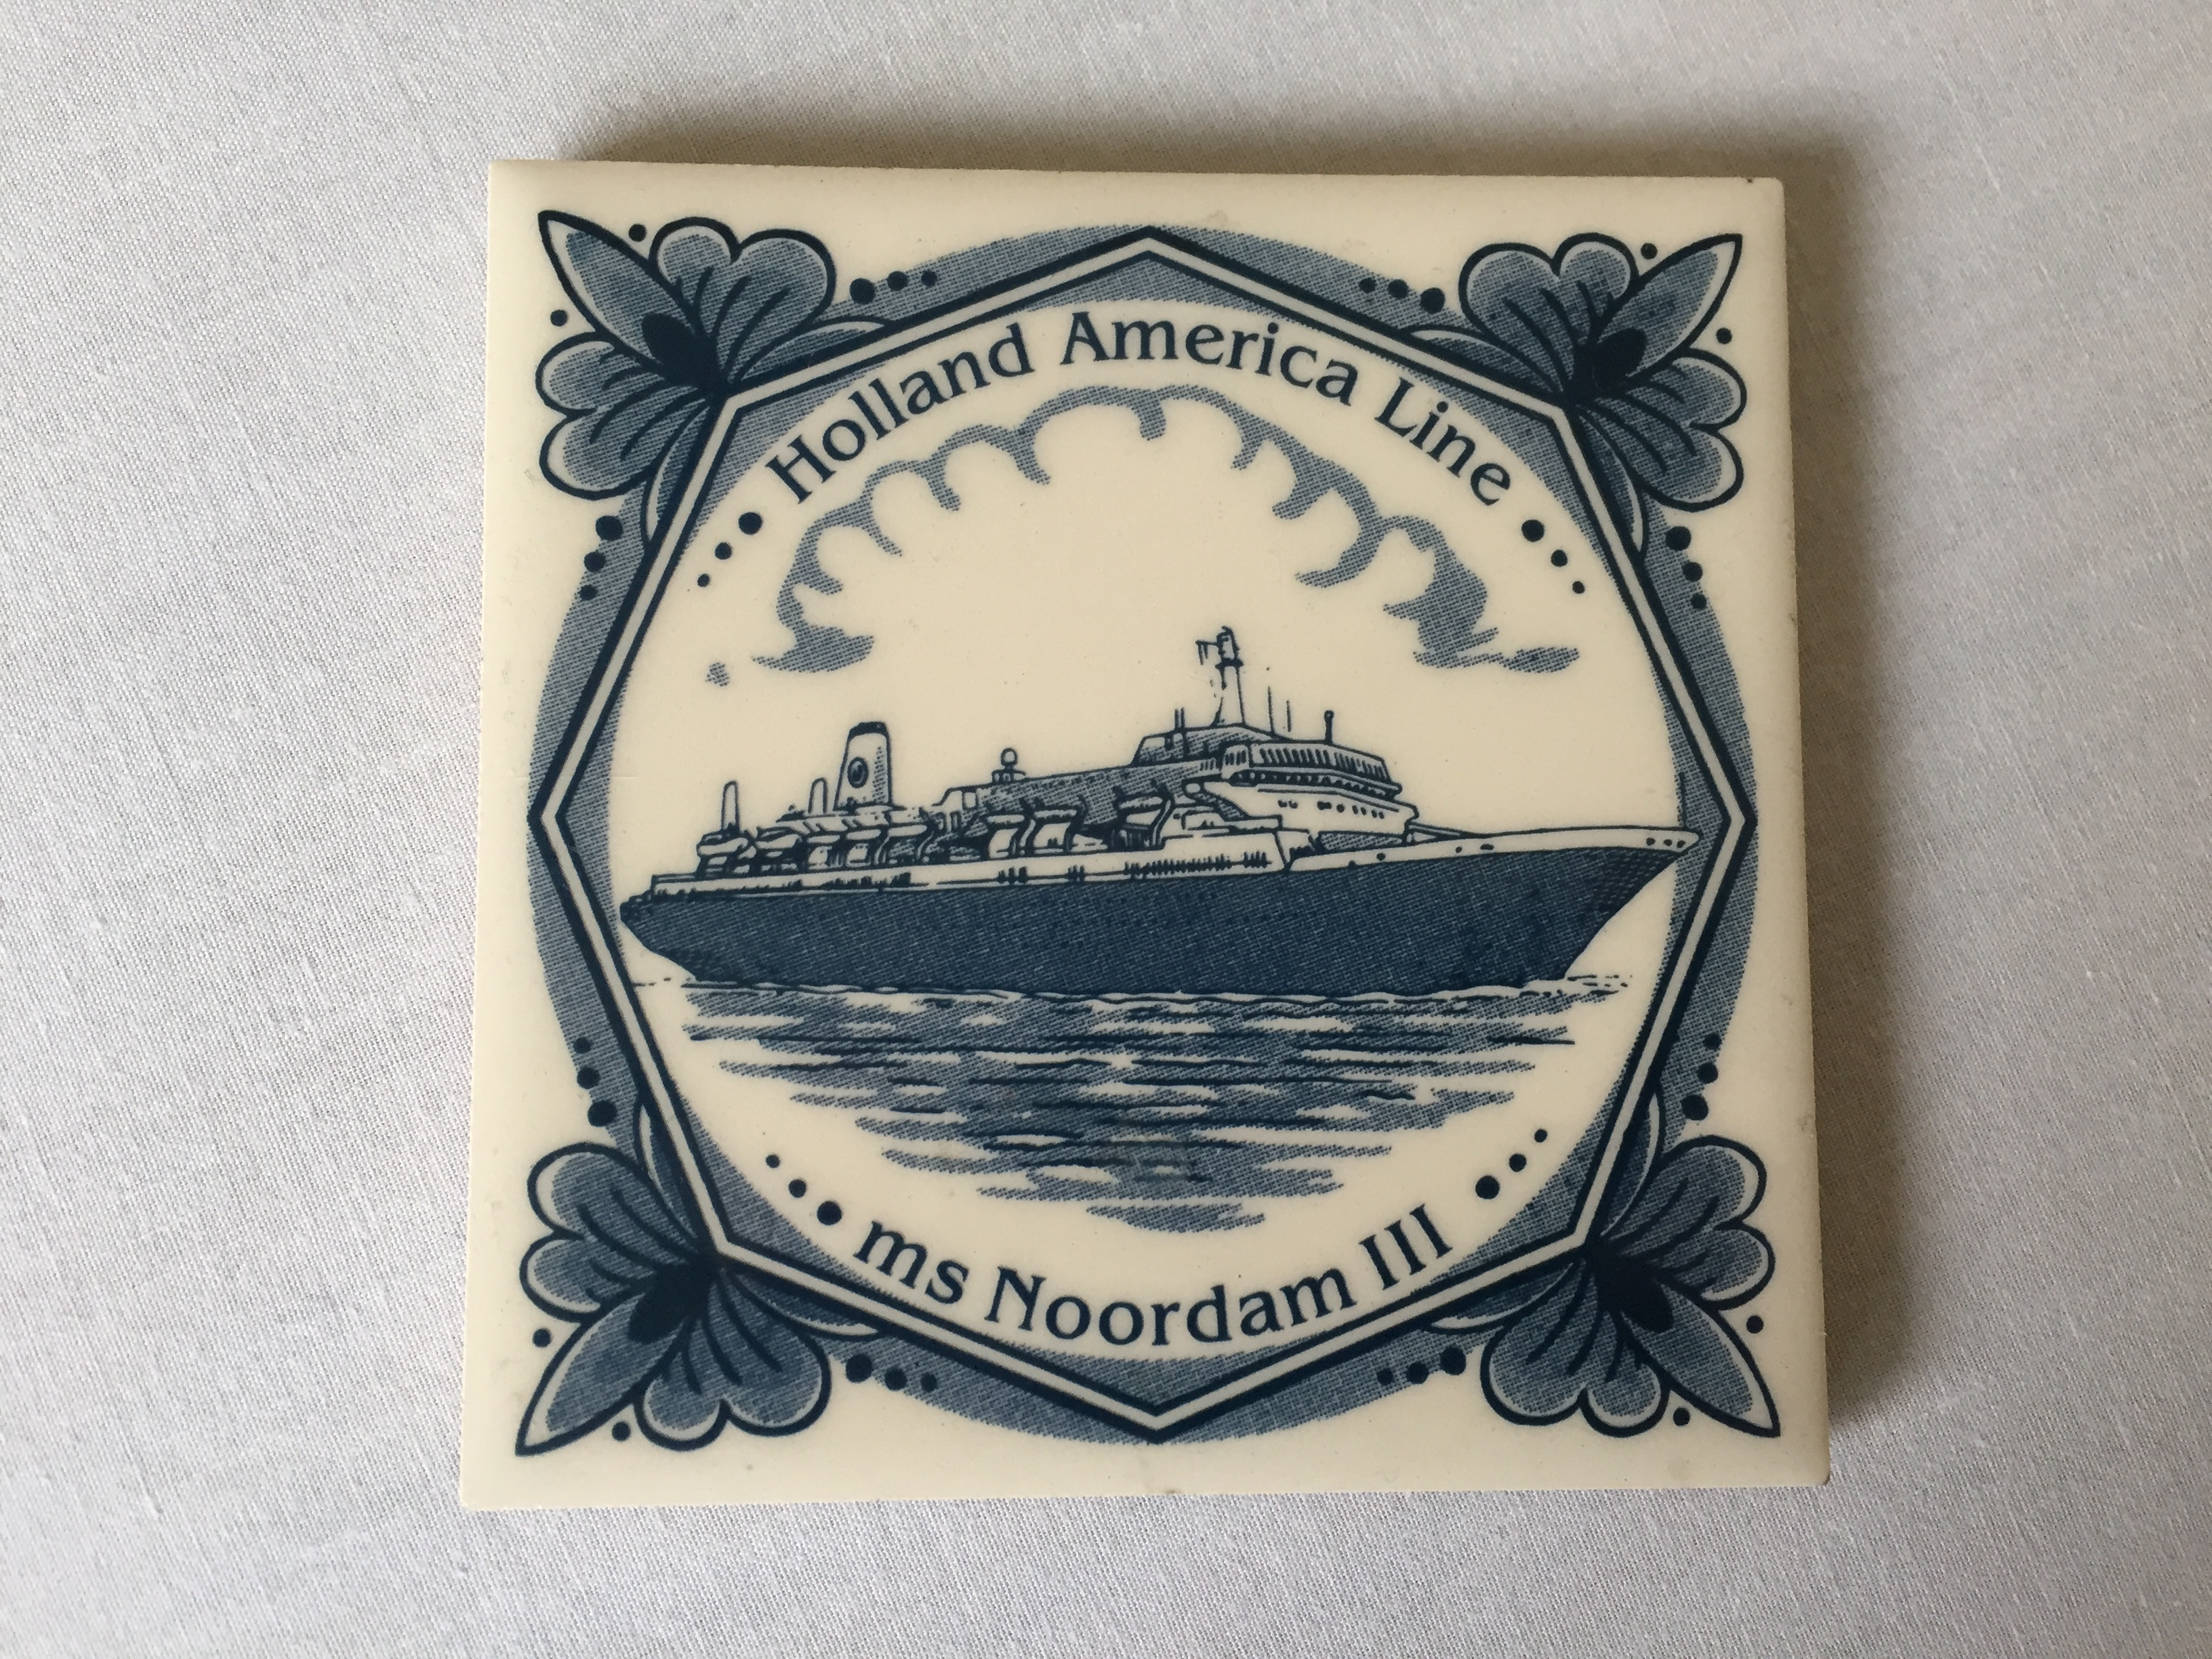 SOUVENIR CHINA COASTER MAT FROM THE HOLLAND AMERICA LINE VESSEL THE MS NOORDAM III